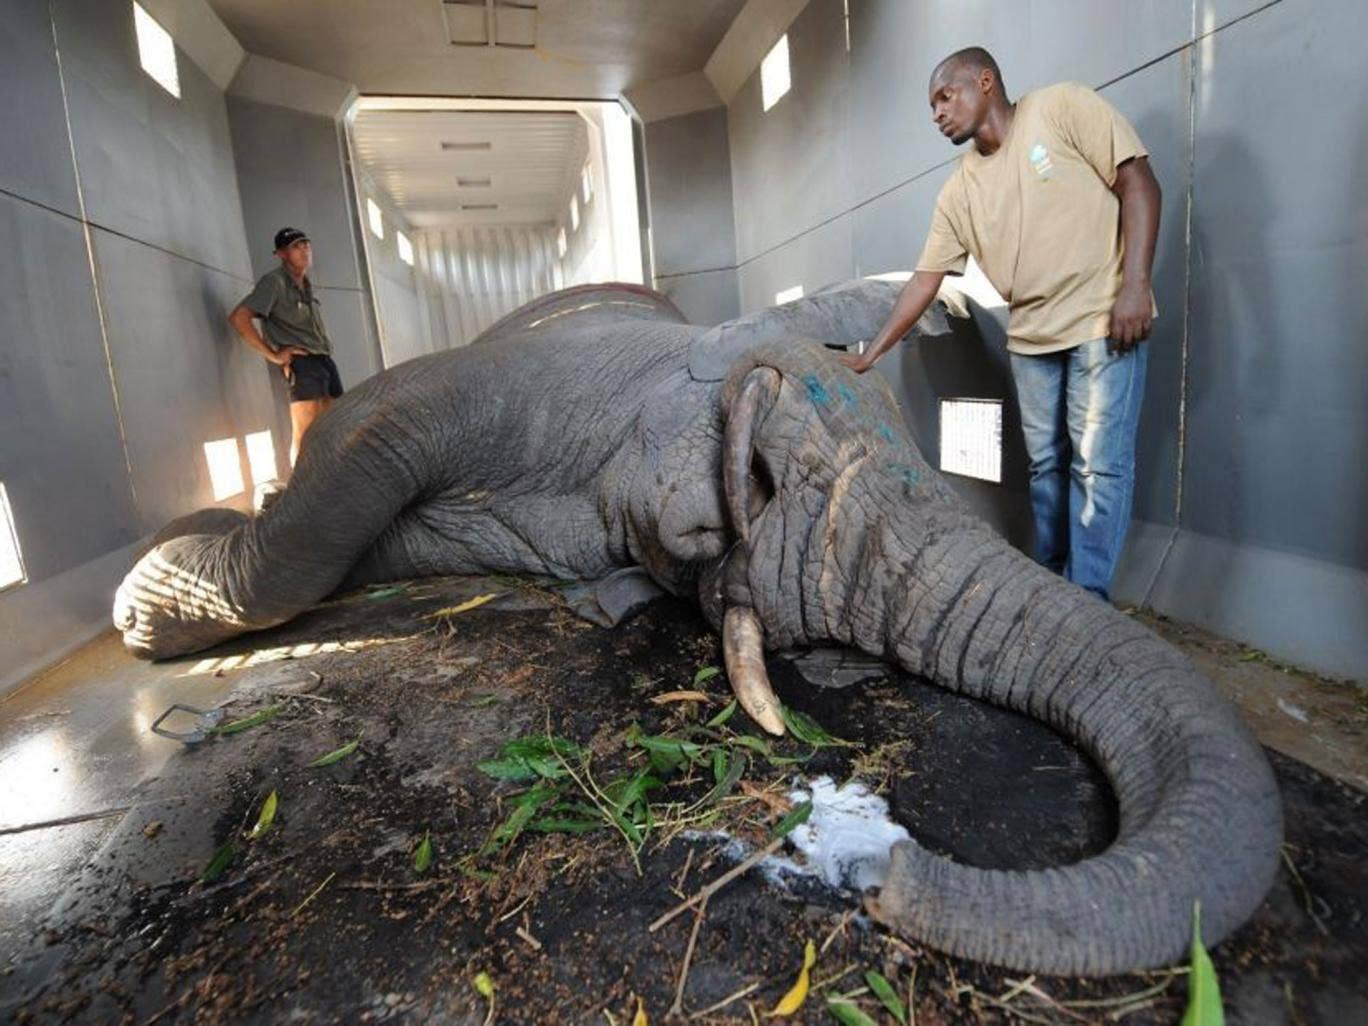 Members of the NGO team IFAW (International Fund for Animal Welfare) stand near an elephant in a truck as part of an operation to relocate dozens of elephants in conflict with farmers in the village of Tapegue, commun of Daloa